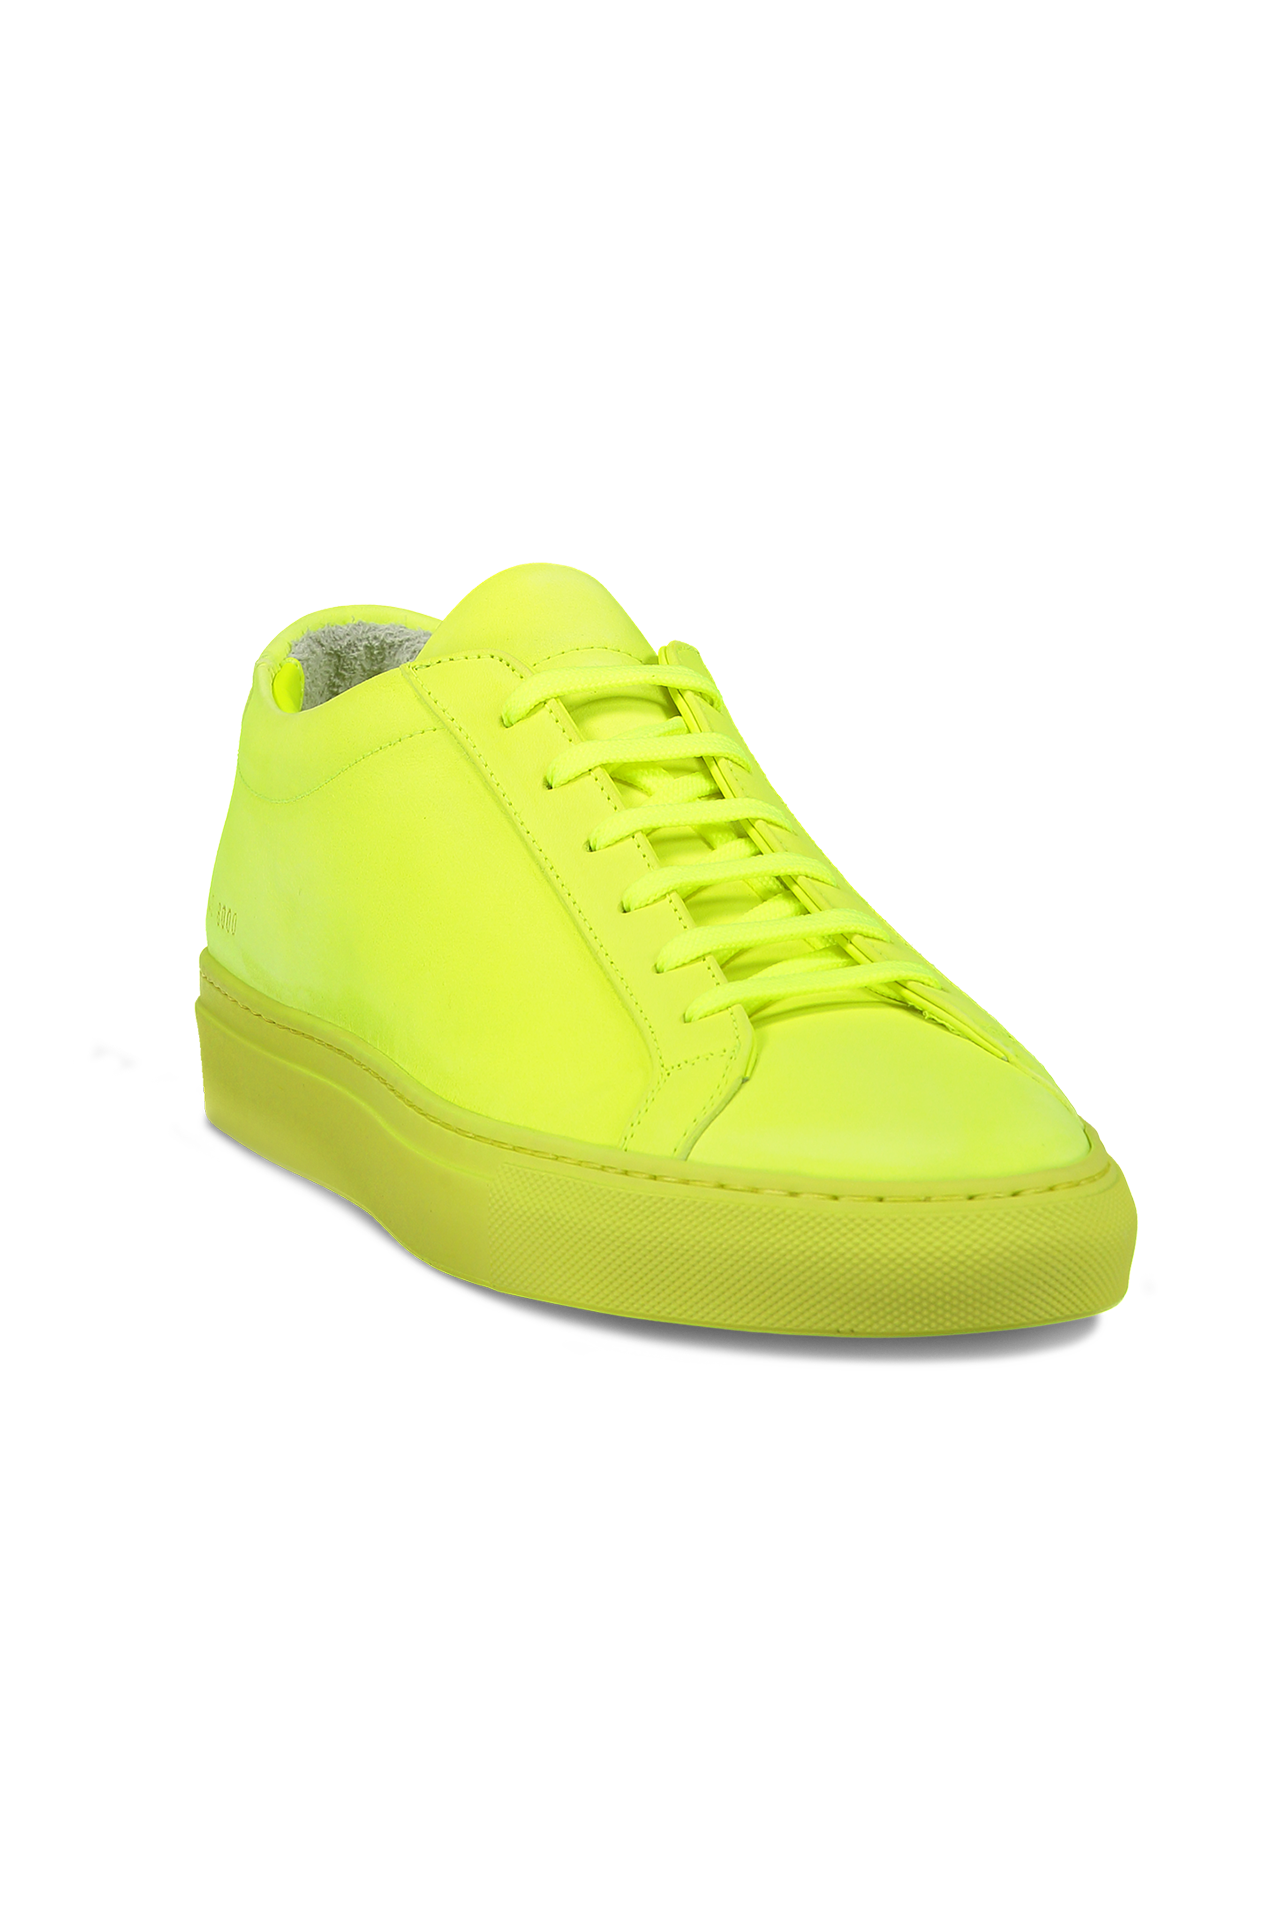 Original Achilles Low FLuo Neon Yellow